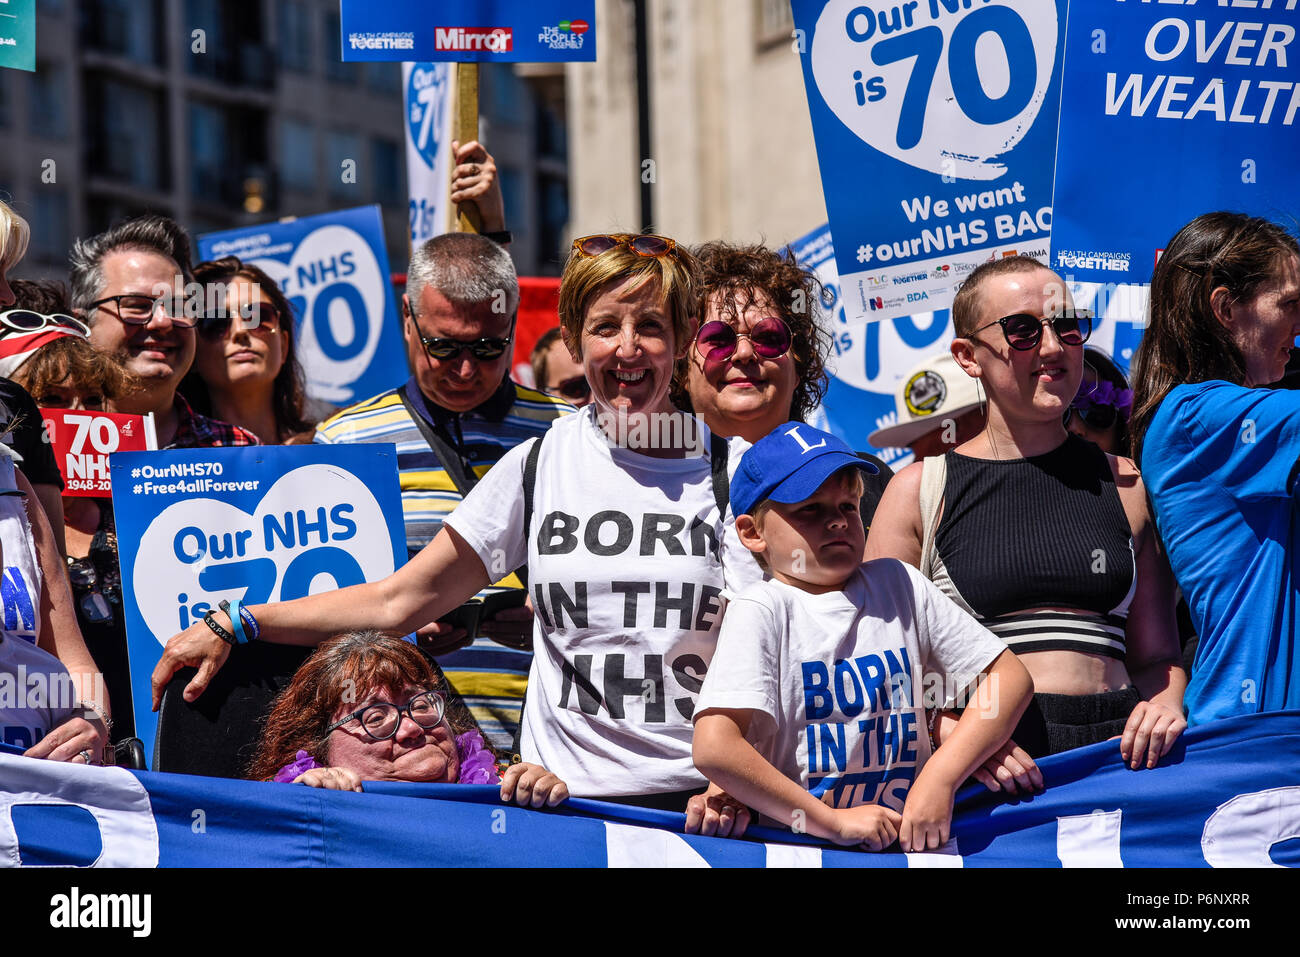 Actor, actress Julie Hesmondhalgh at the 70th anniversary of the National Health Service march demonstration in London, UK. NHS70 - Stock Image